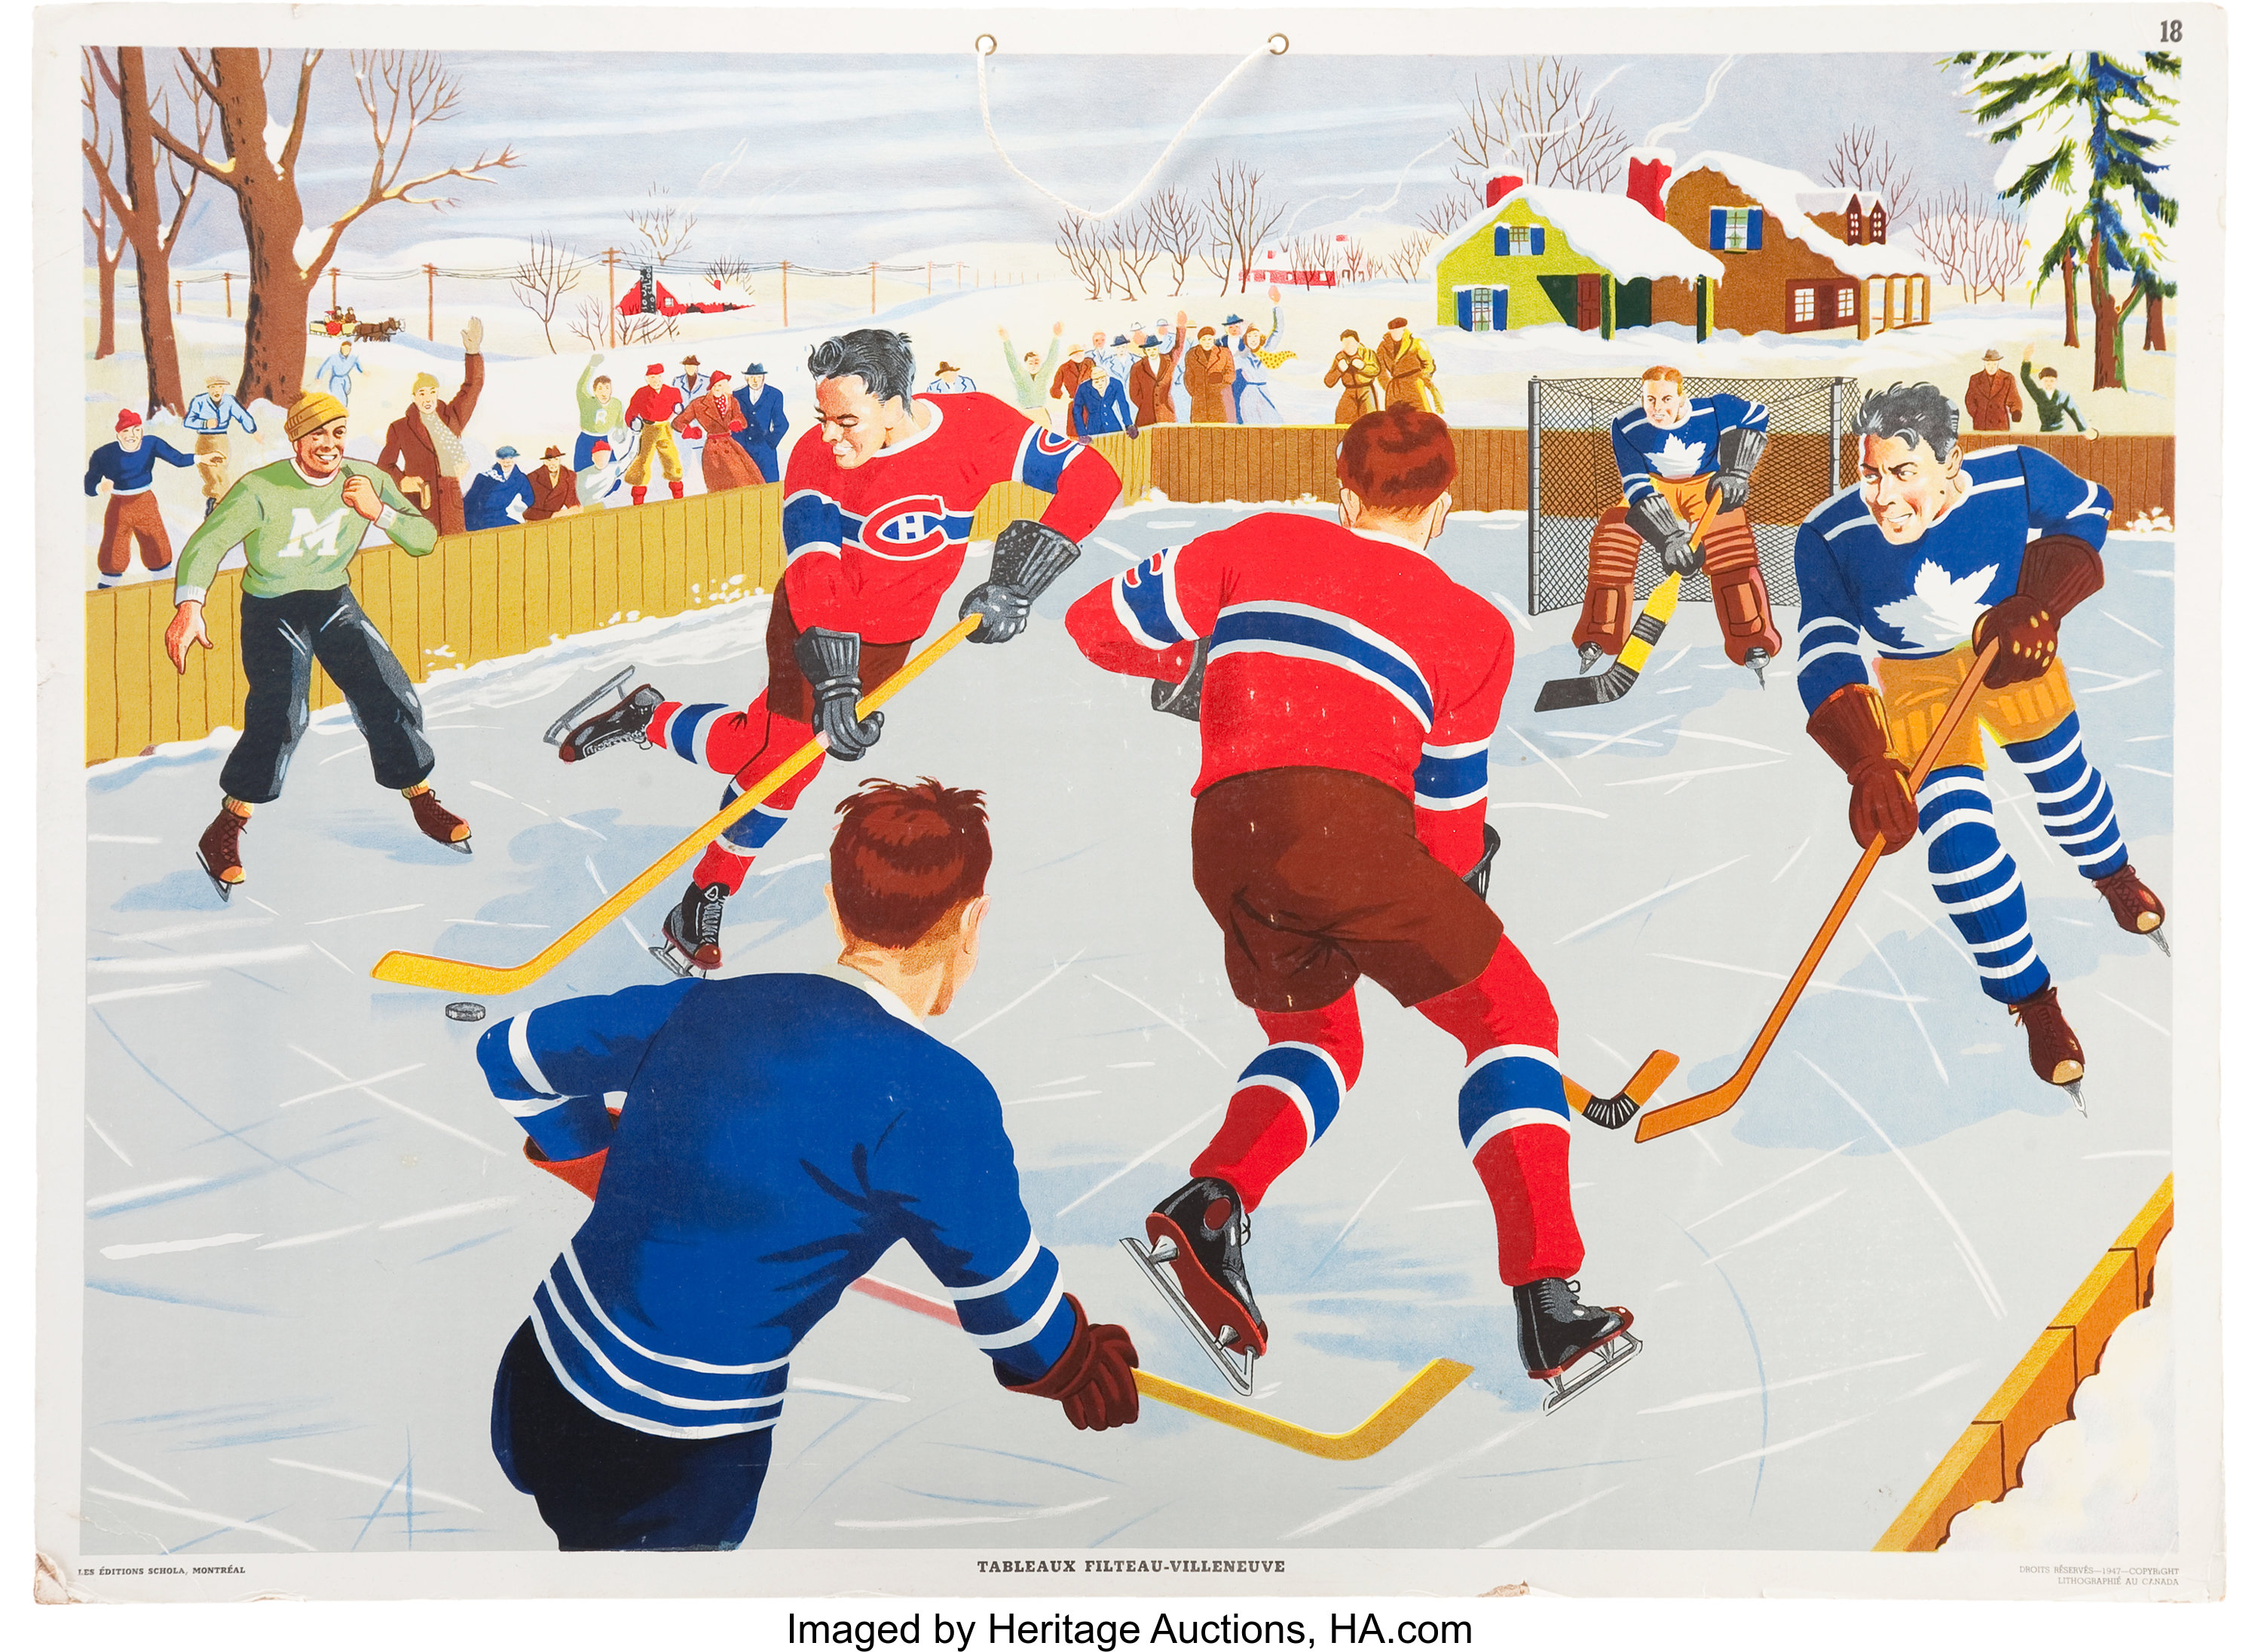 1947 Toronto Maple Leafs And Montreal Canadiens Outdoor Scene Lot 42164 Heritage Auctions